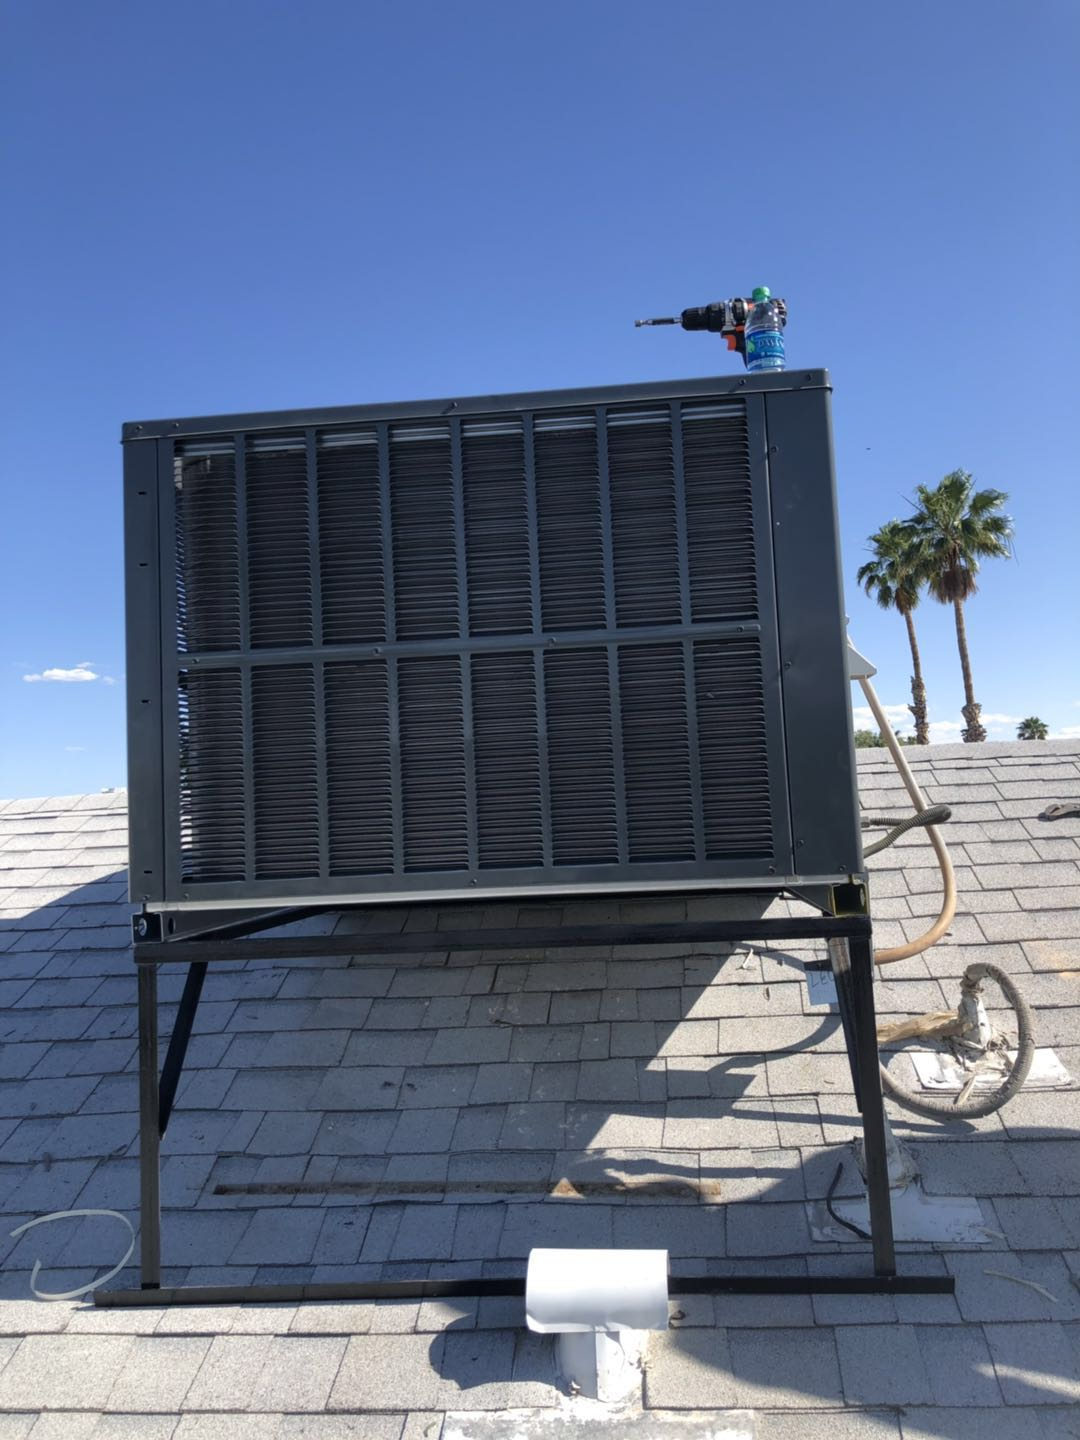 las vegas foster cooling & heating